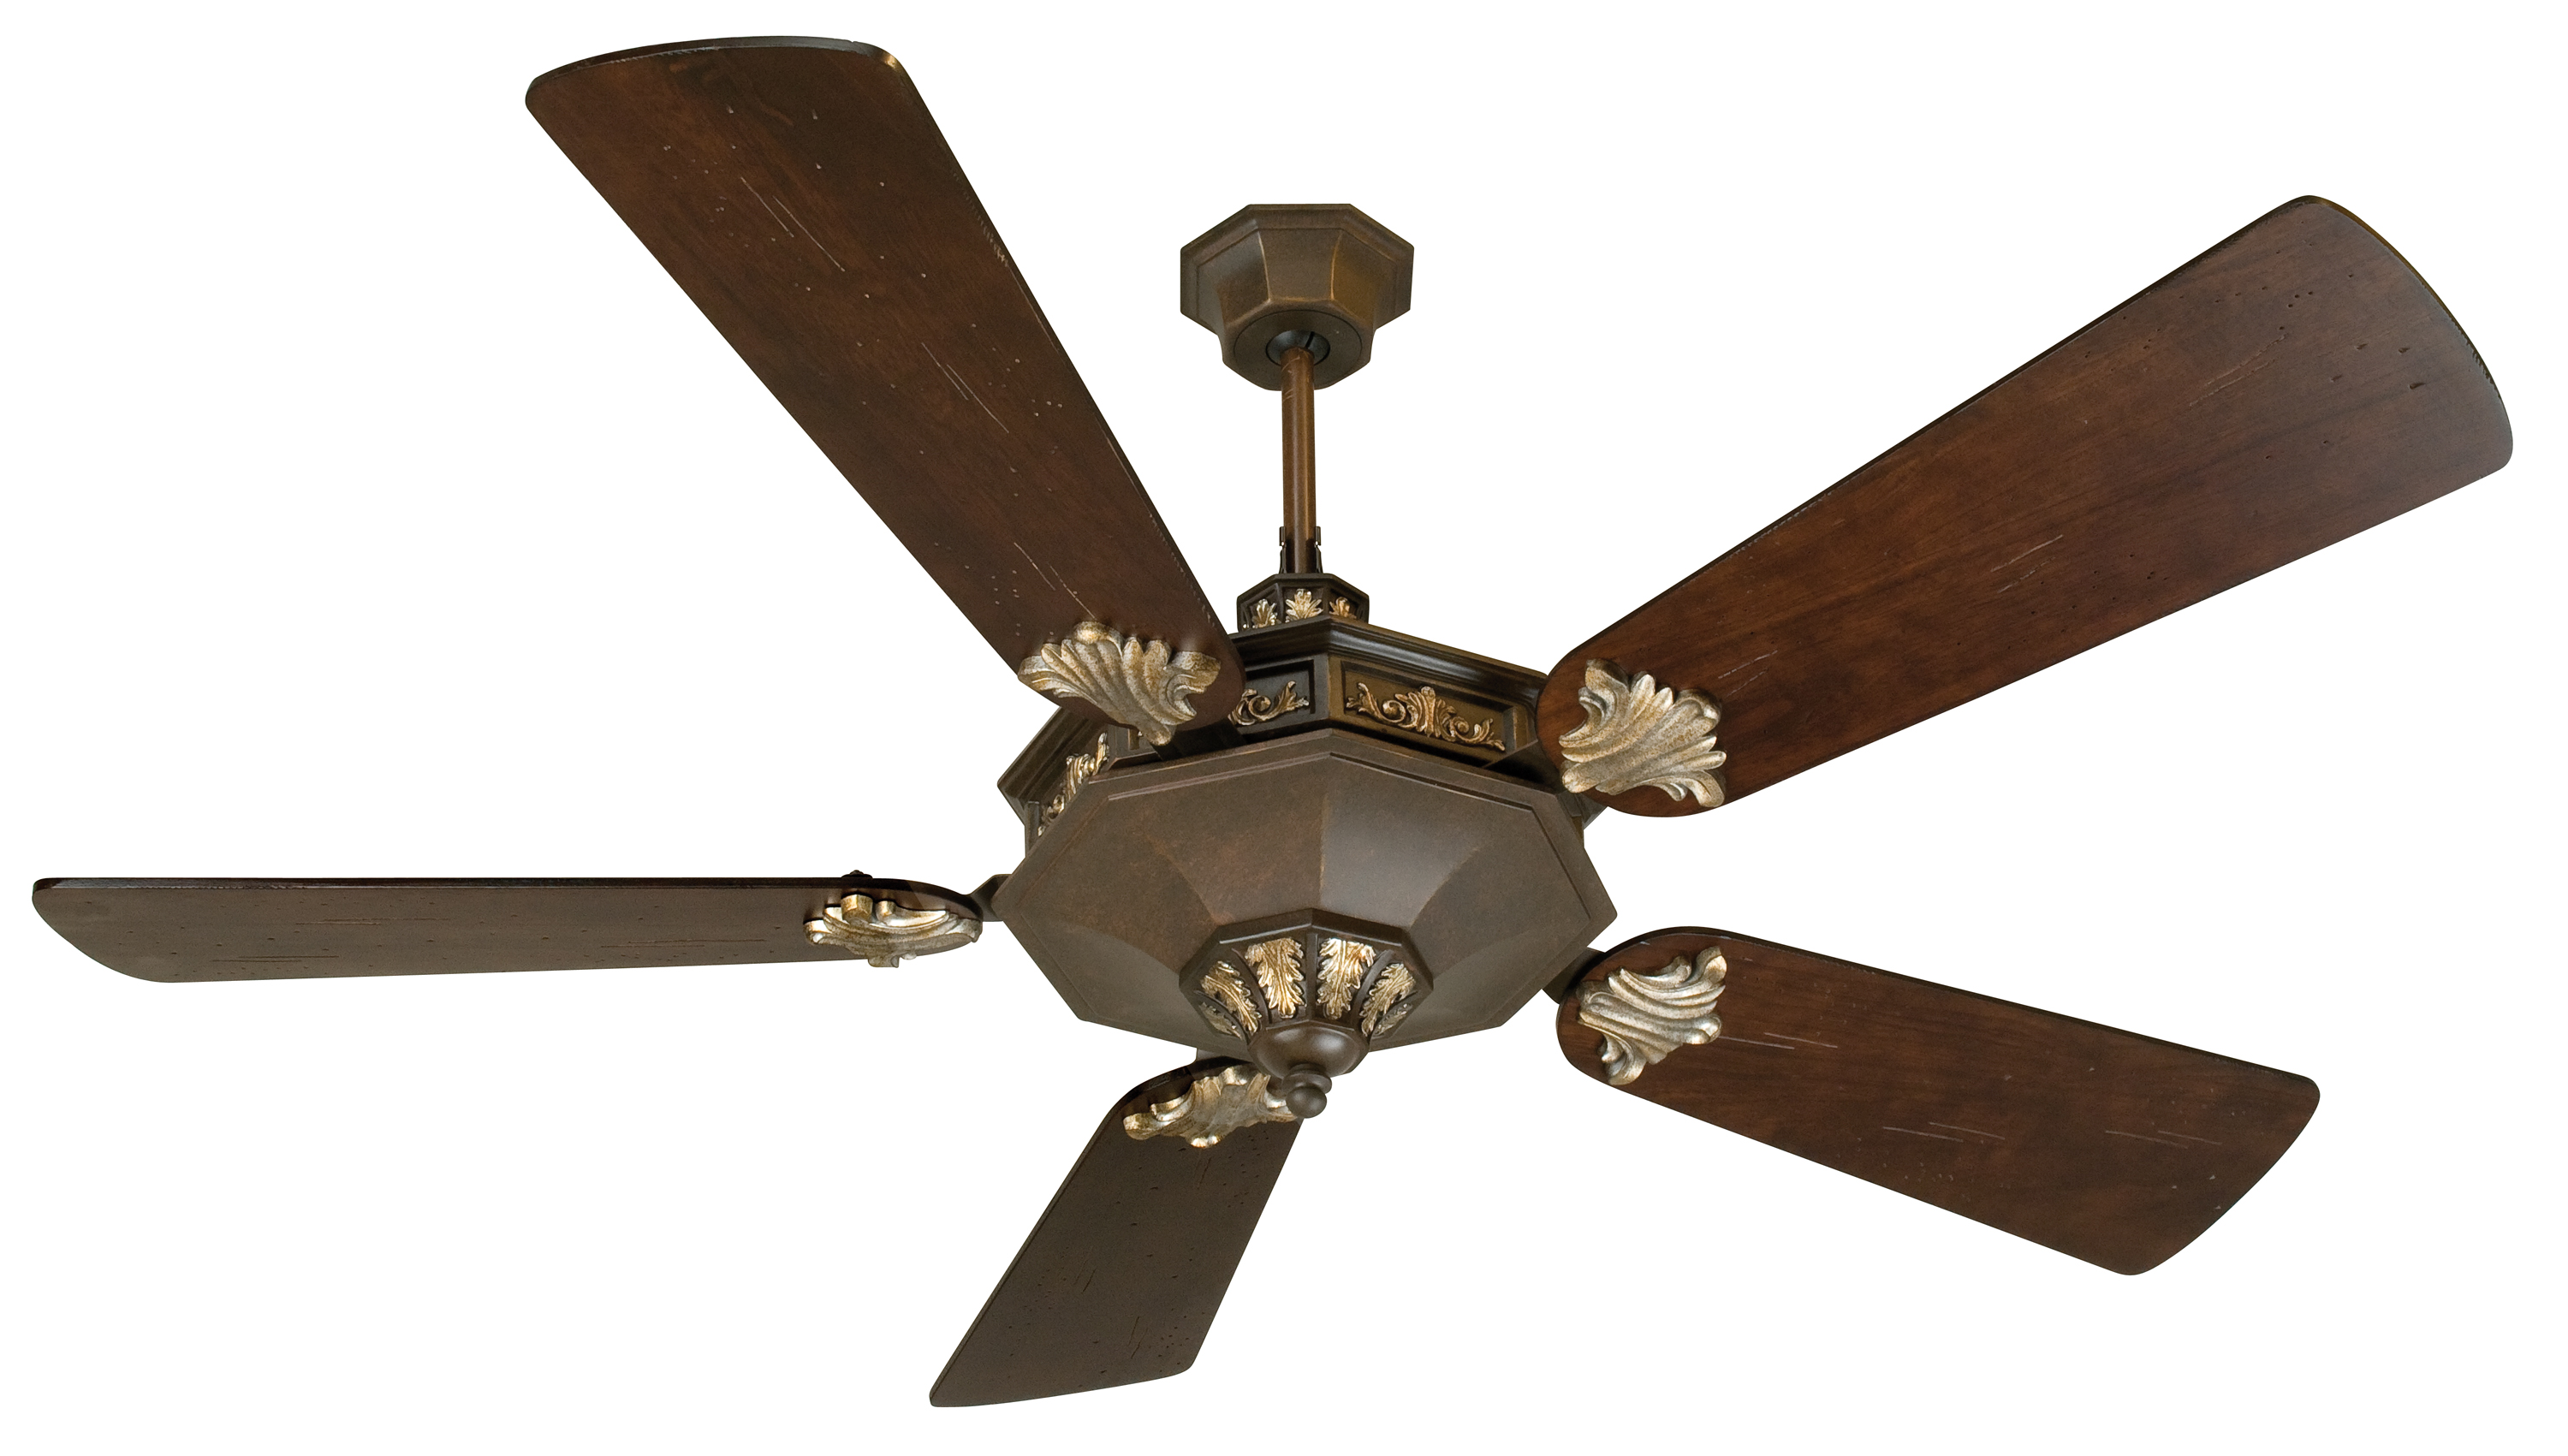 Rustic Weathered Patina Ceiling Fan Fan Comes As Pictured